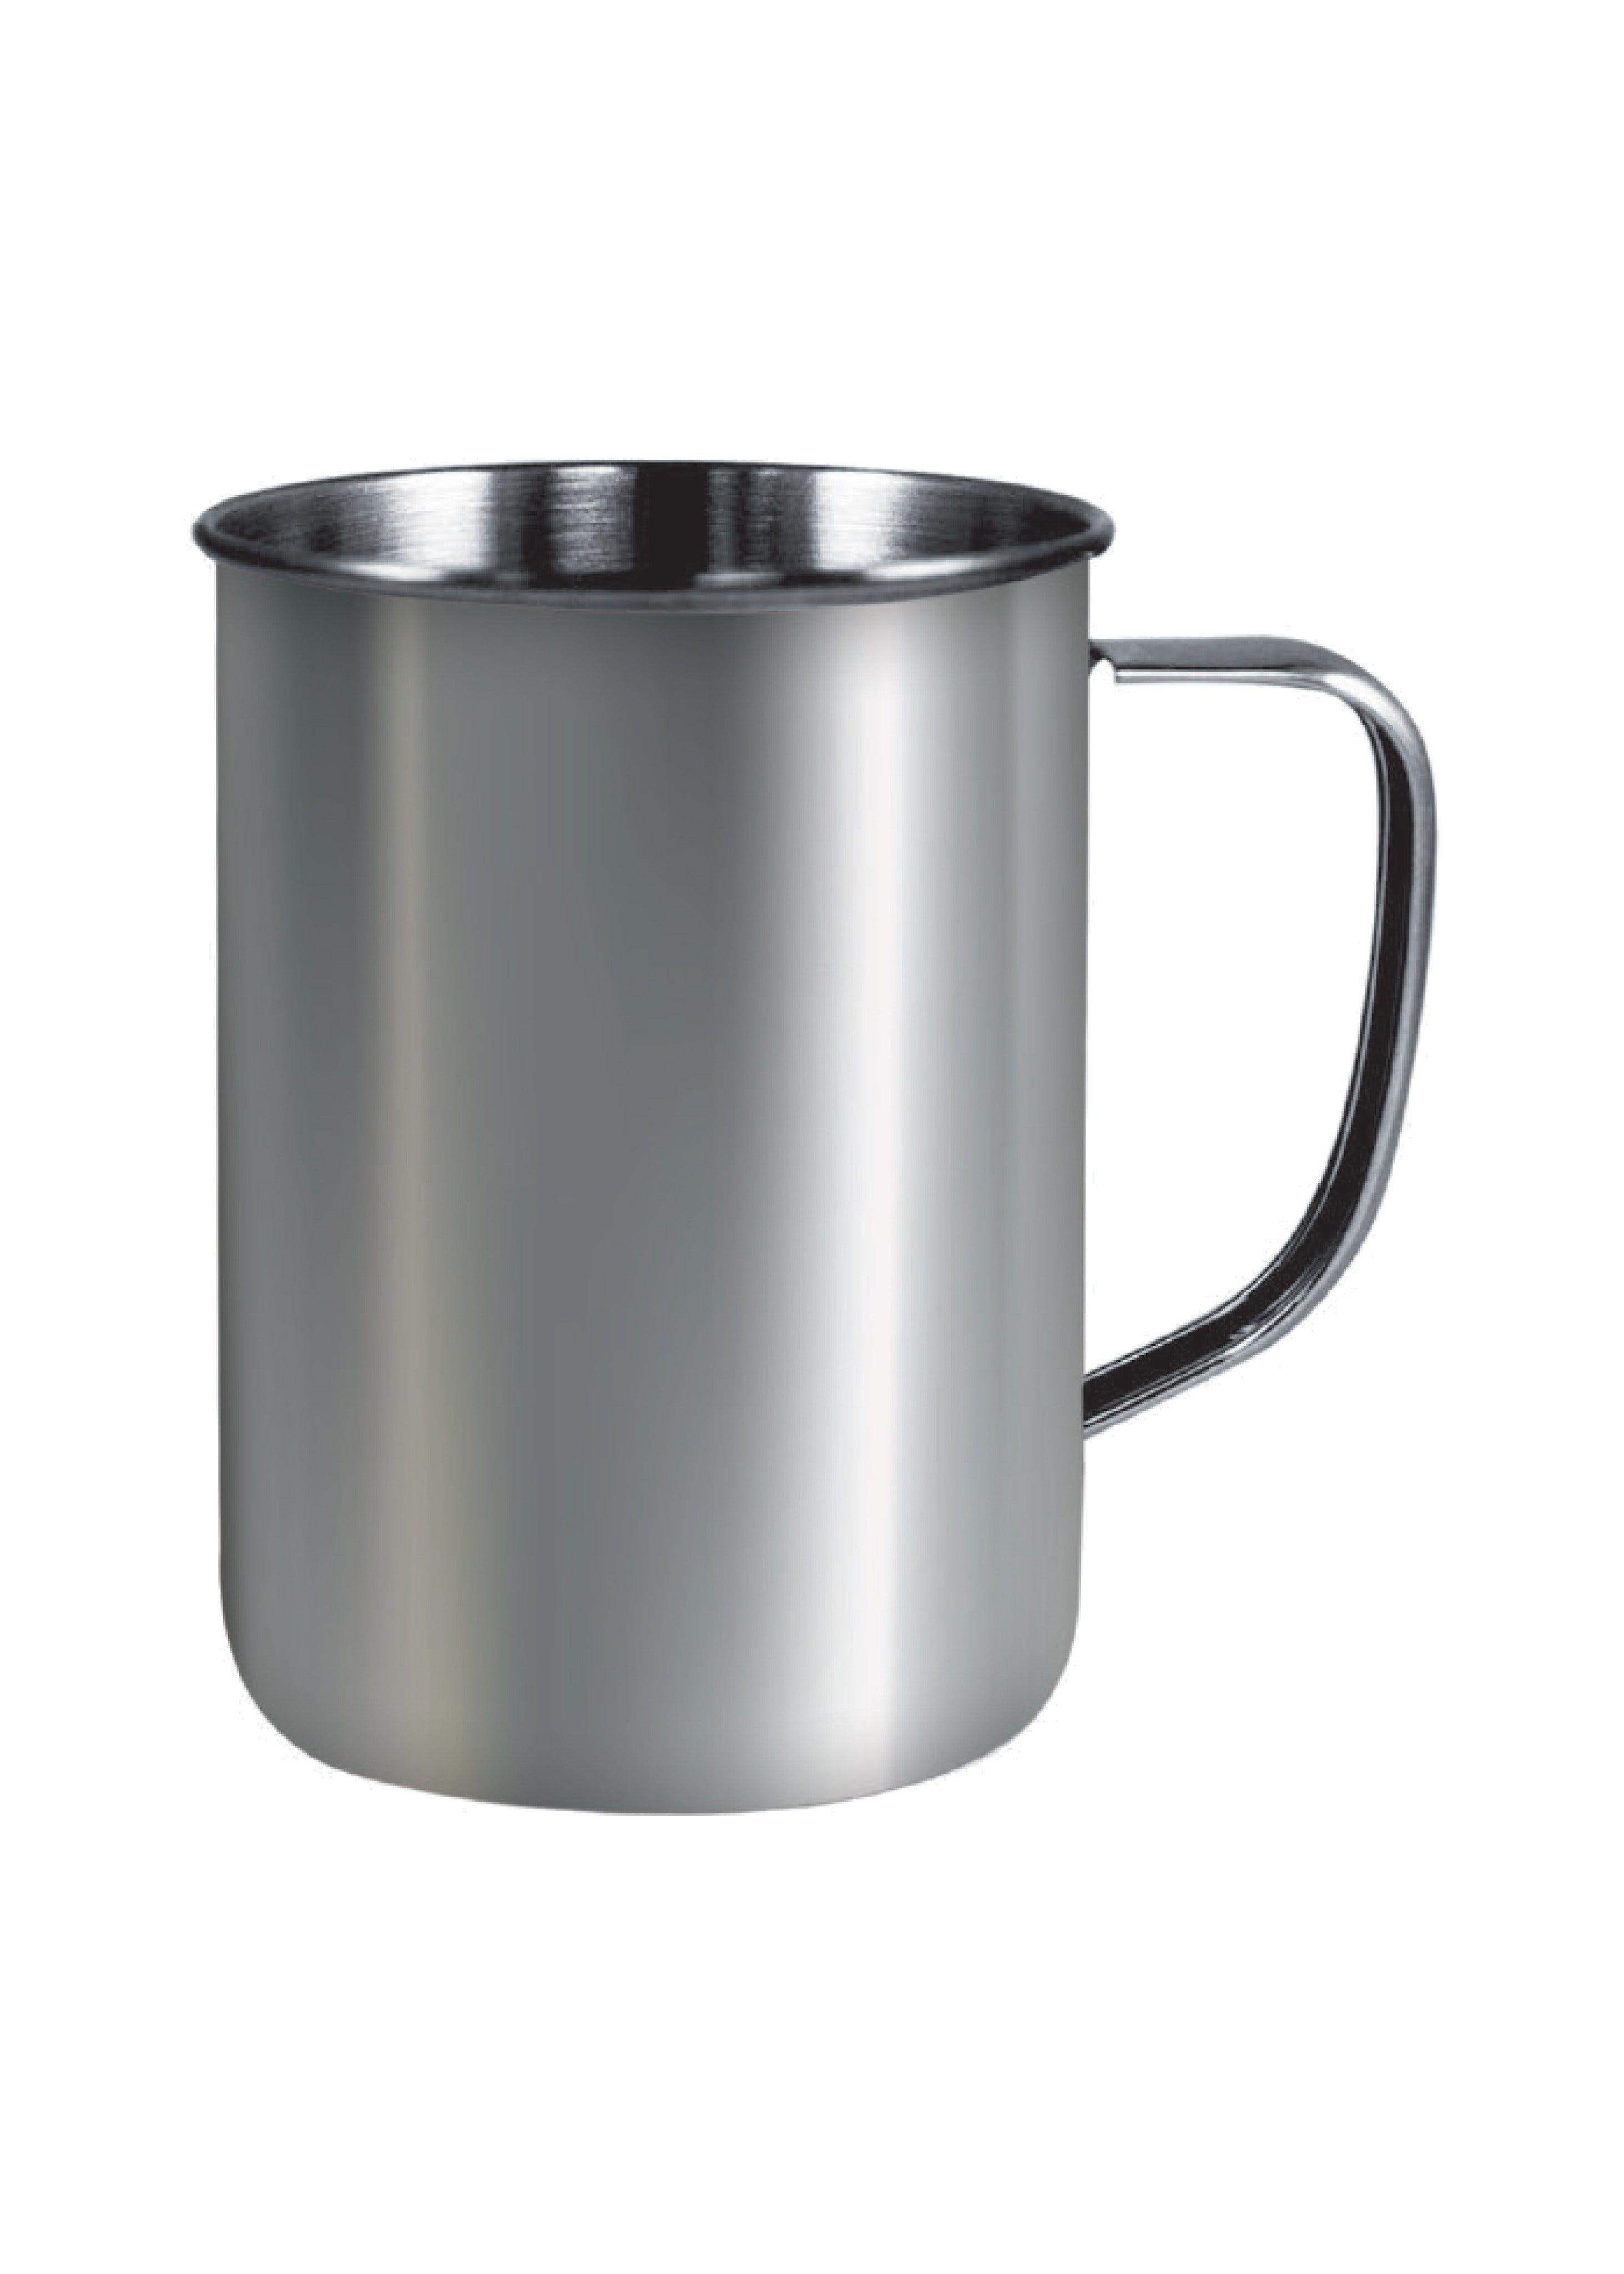 Catalog Product Steel Mugs Stainless PhotosPricingAnd TulKF1J3c5